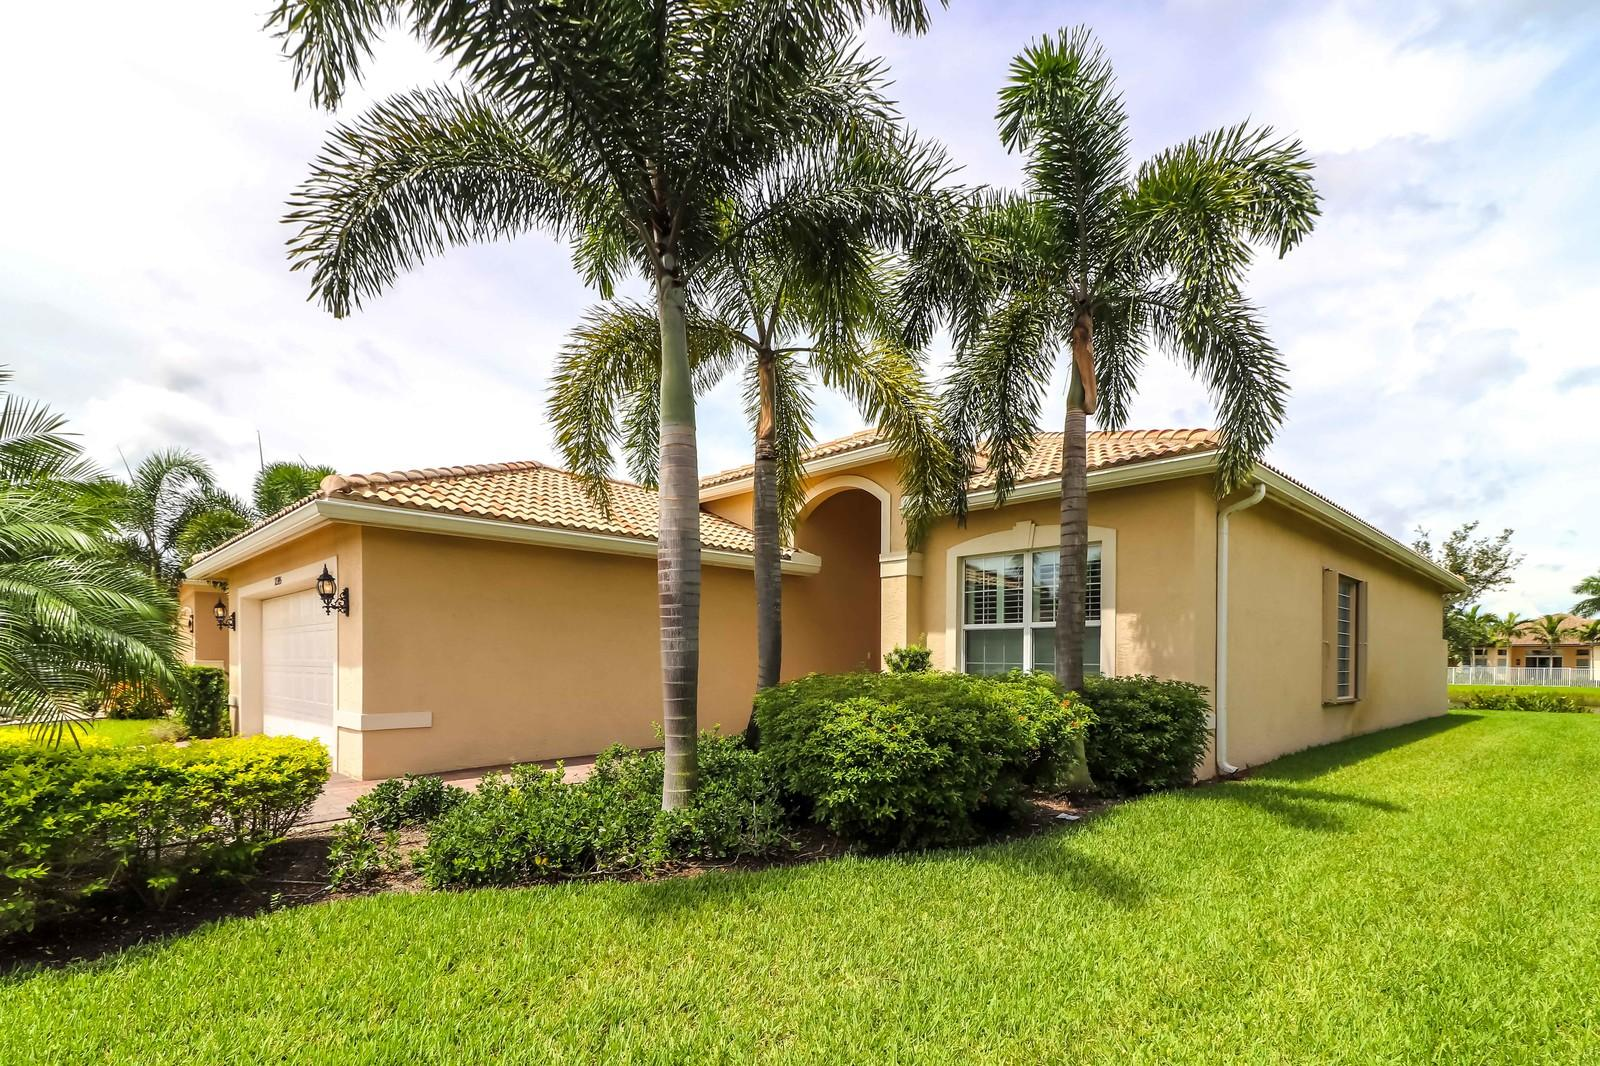 Valencia Cove Homes For Sale In Boynton Beach Fl